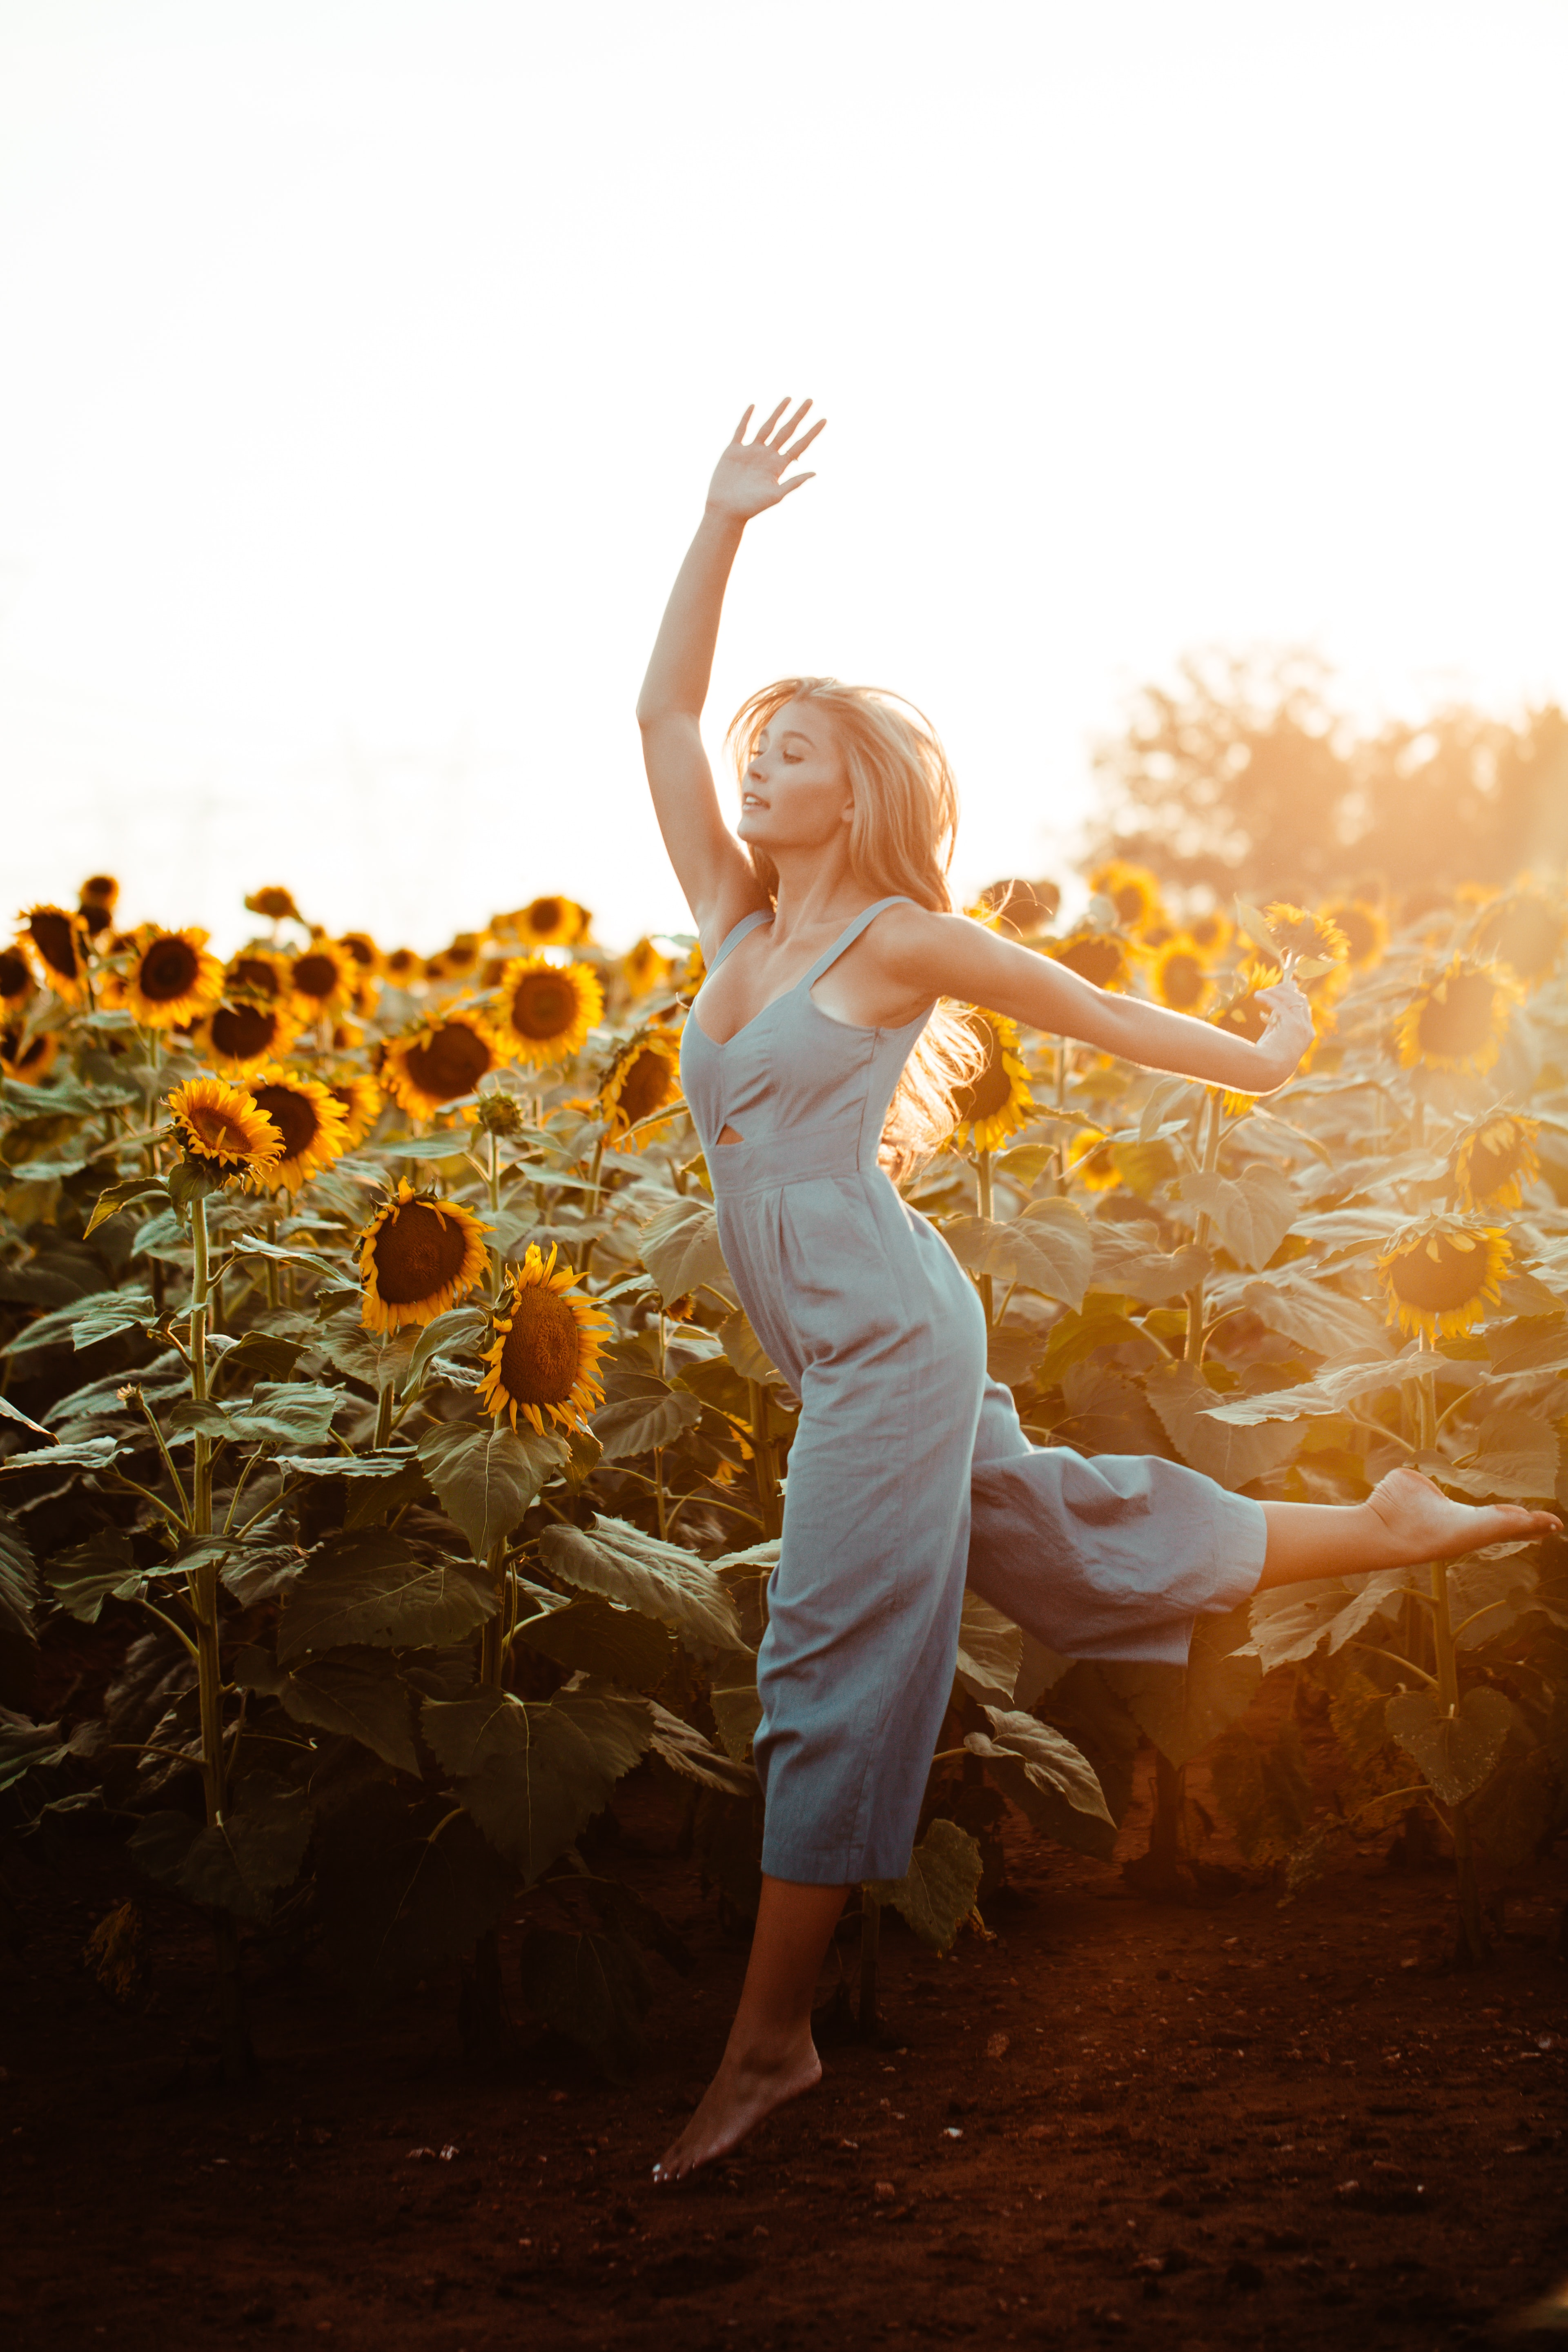 close up photography of woman dancing beside sunflower field during golden hour